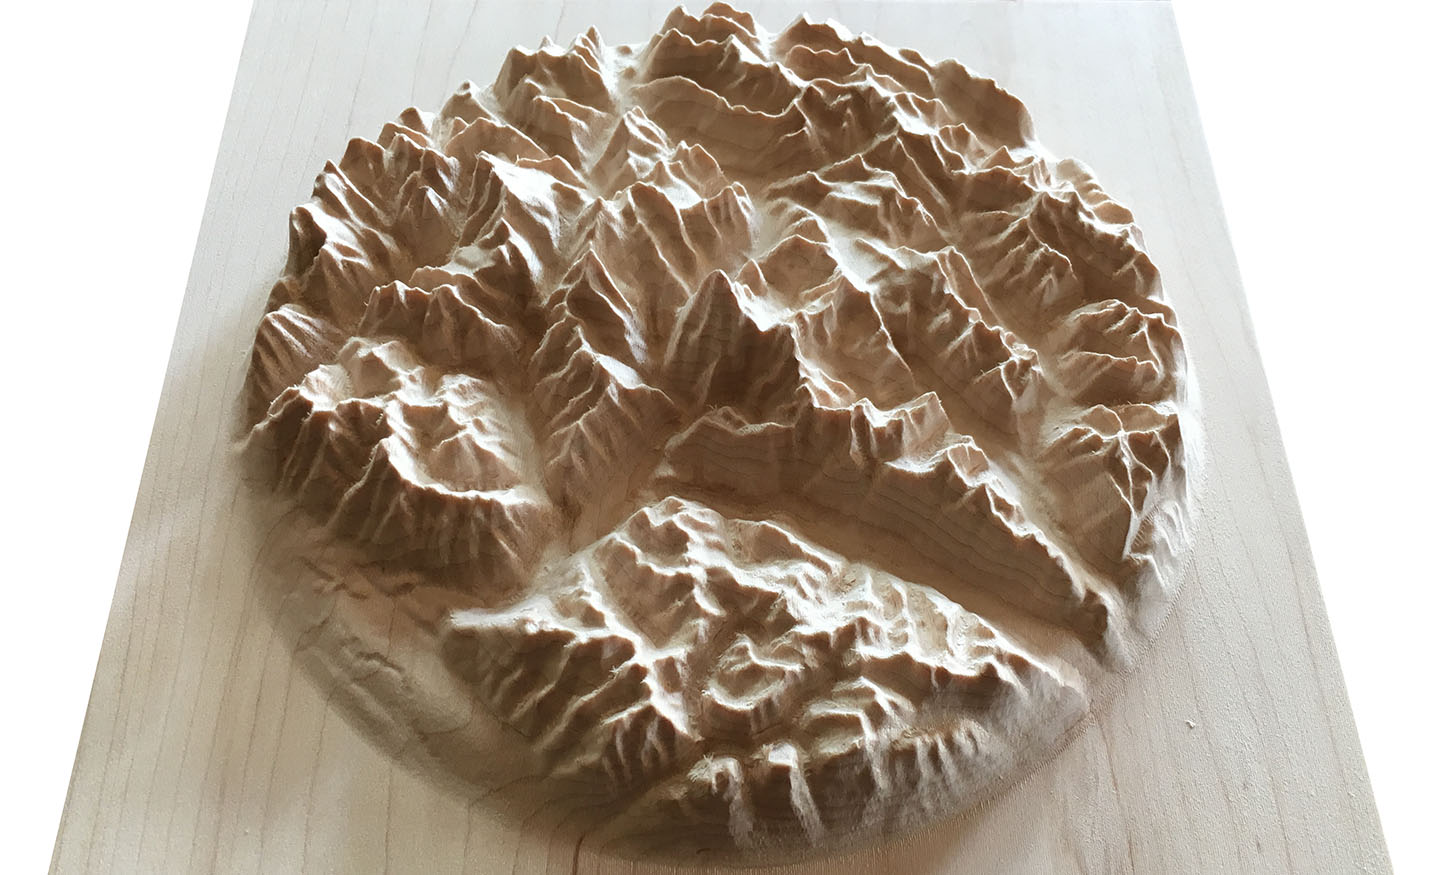 three-dimensional wooden relief carving of the mountains around Mount Robson, British Columbia, Canada